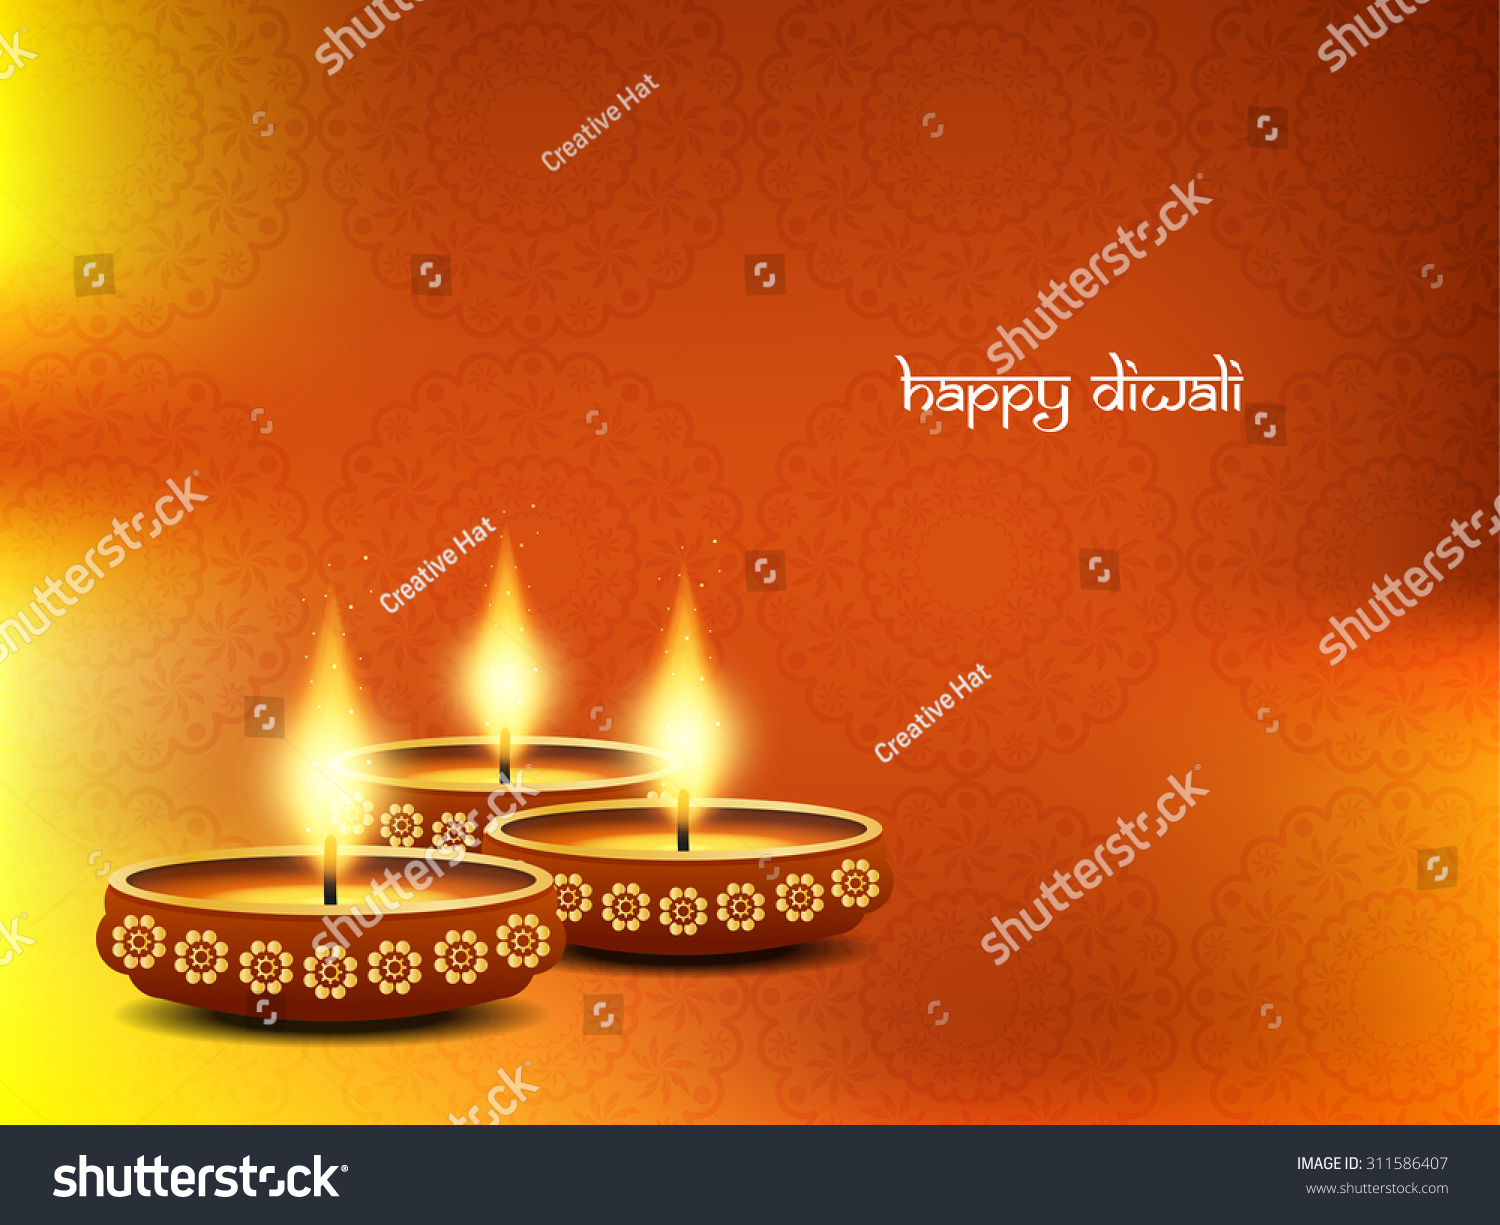 Happy Diwali elegant vector background design